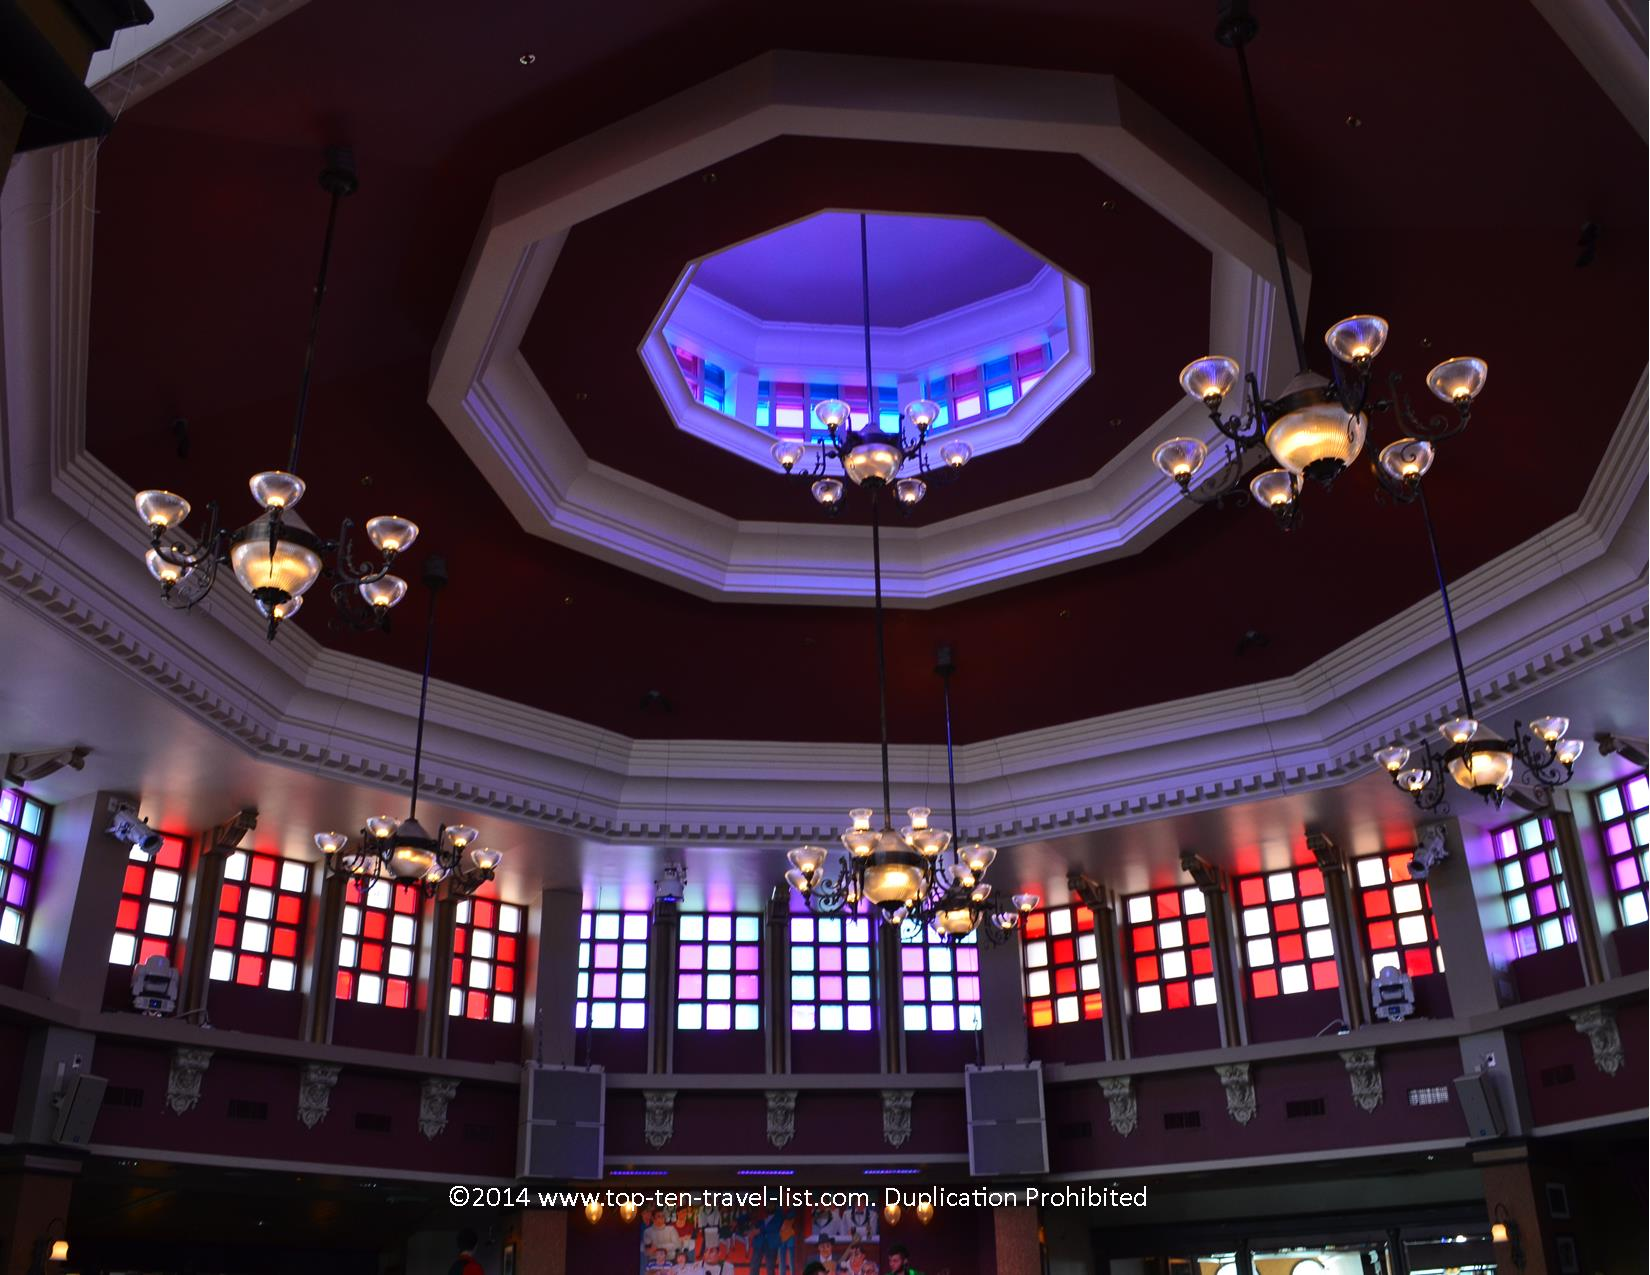 Beautiful domed ceilings of Ragland Road - Downtown Disney in Orlando, Florida